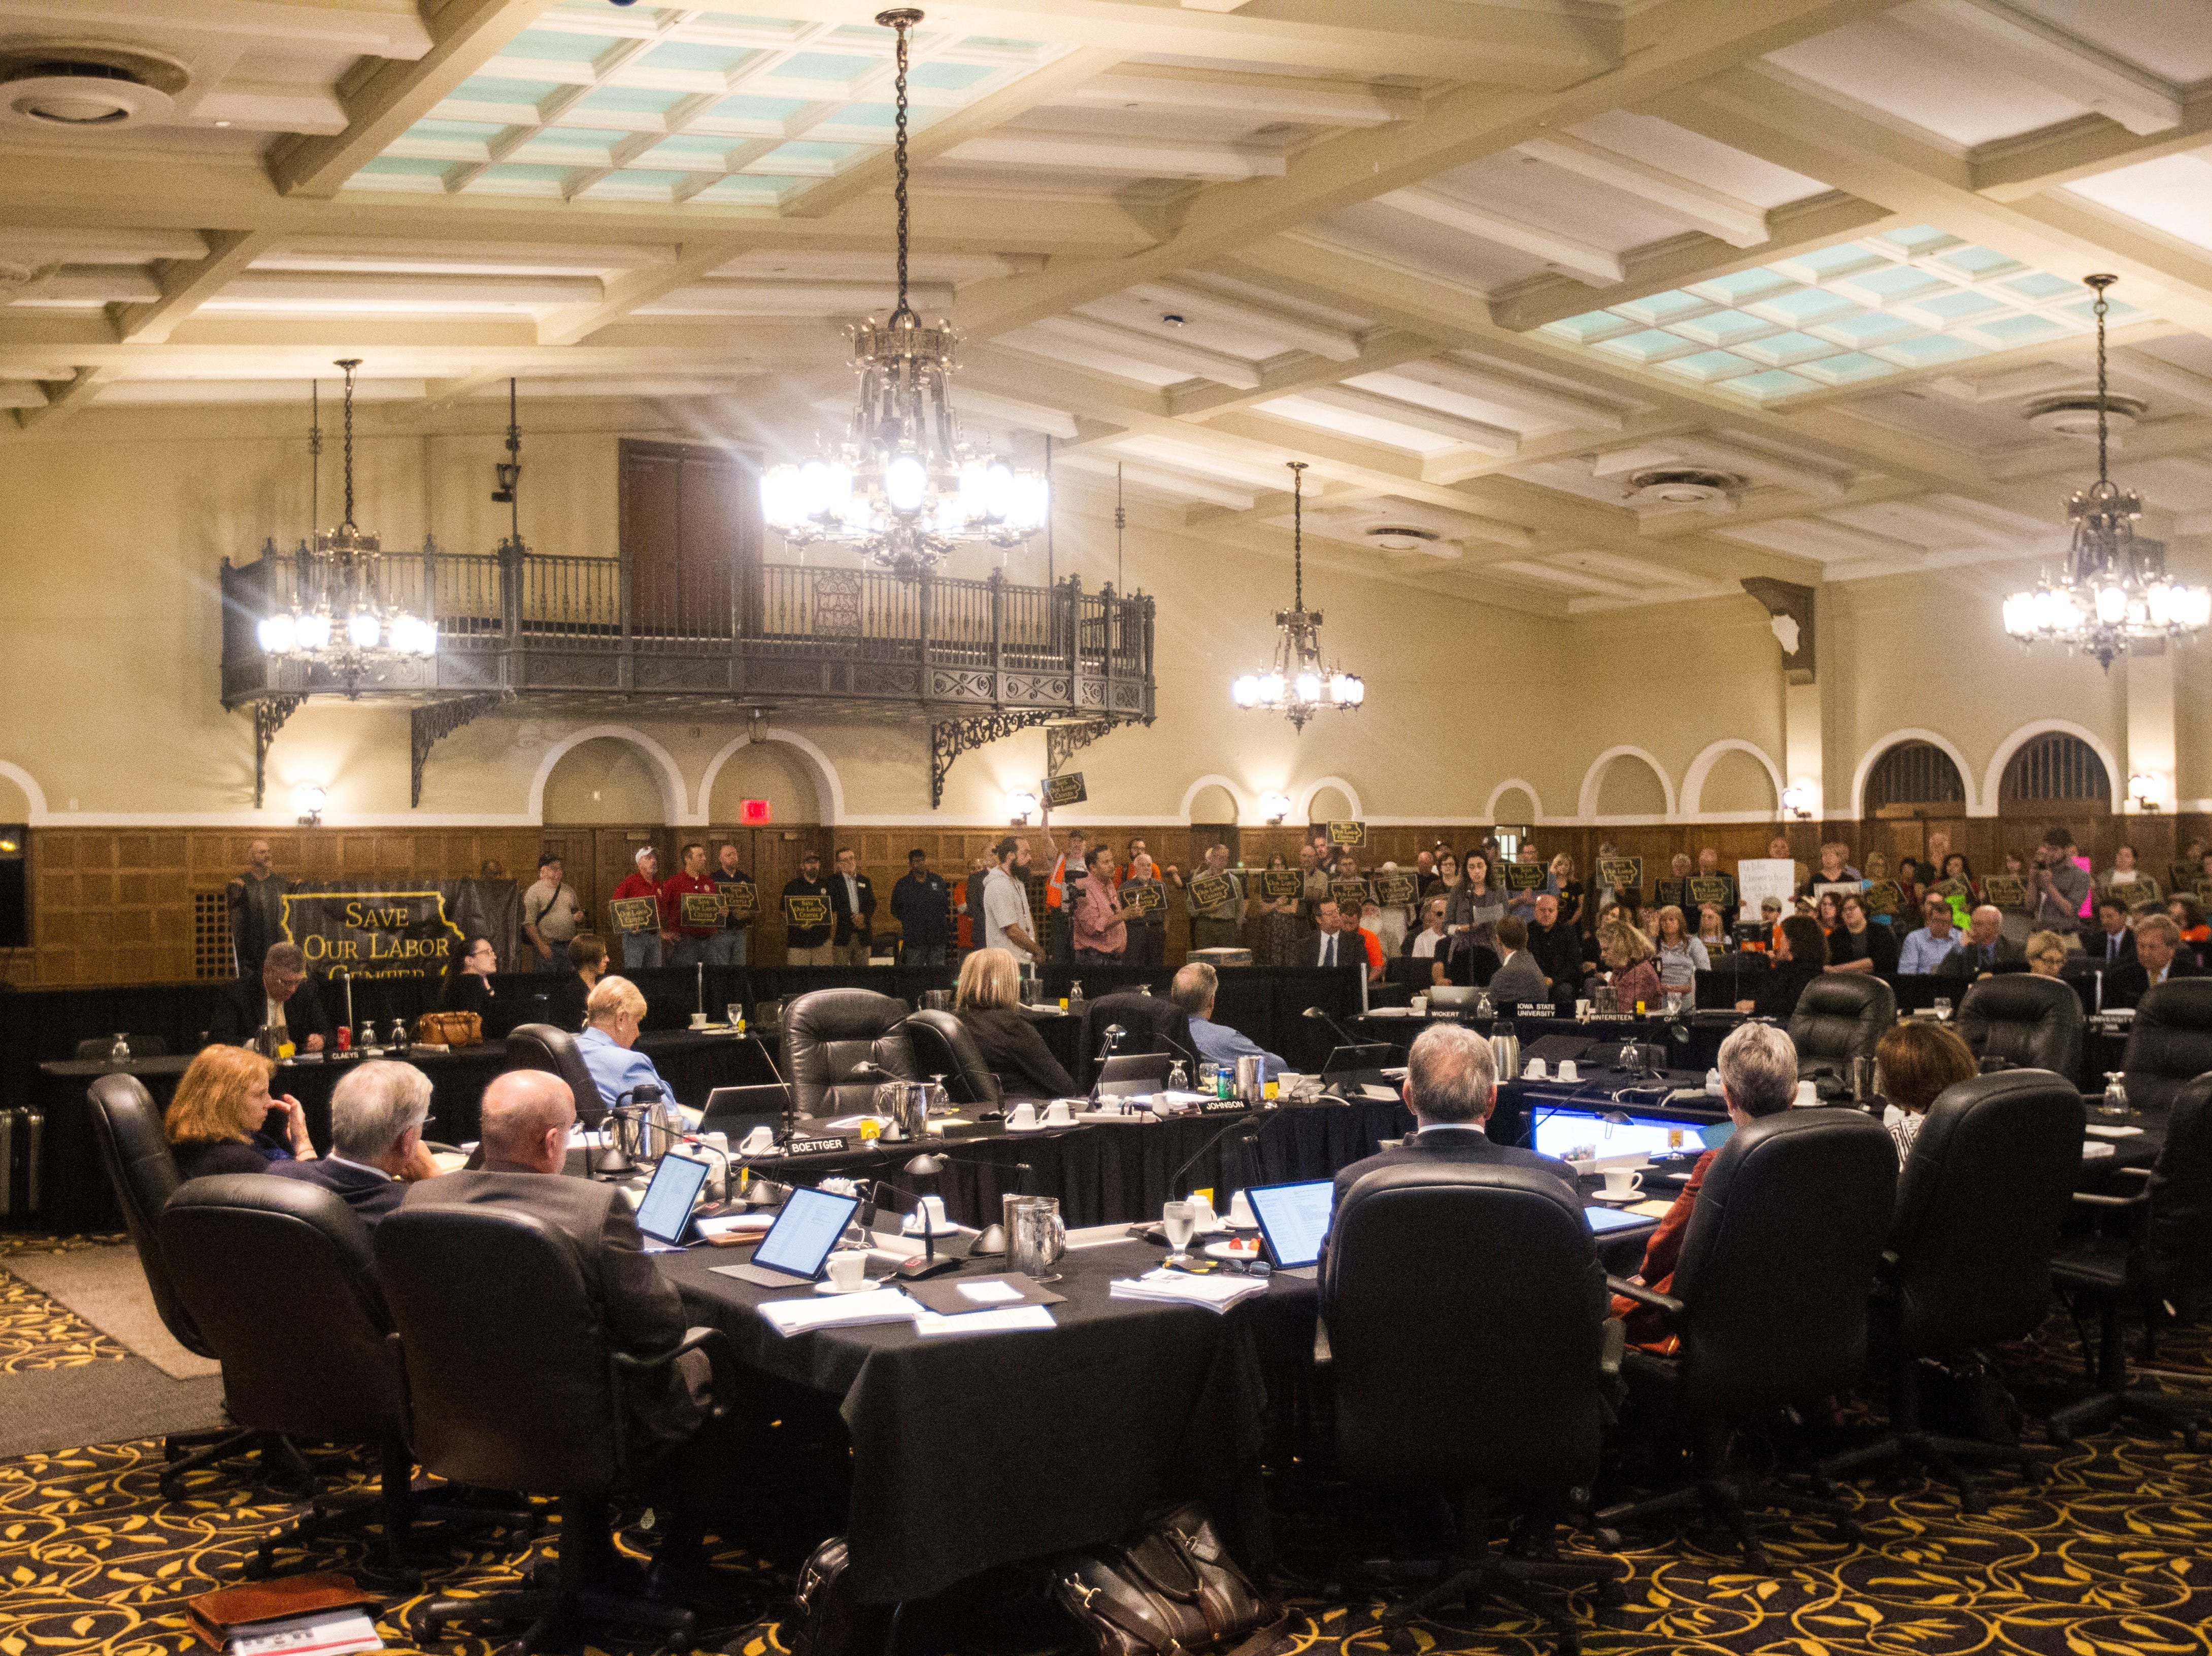 Regents listen to public comment during an Iowa Board of Regents meeting on Thursday, Sept. 13, 2018, in the Iowa Memorial Union main ballroom on the University of Iowa campus in Iowa City.